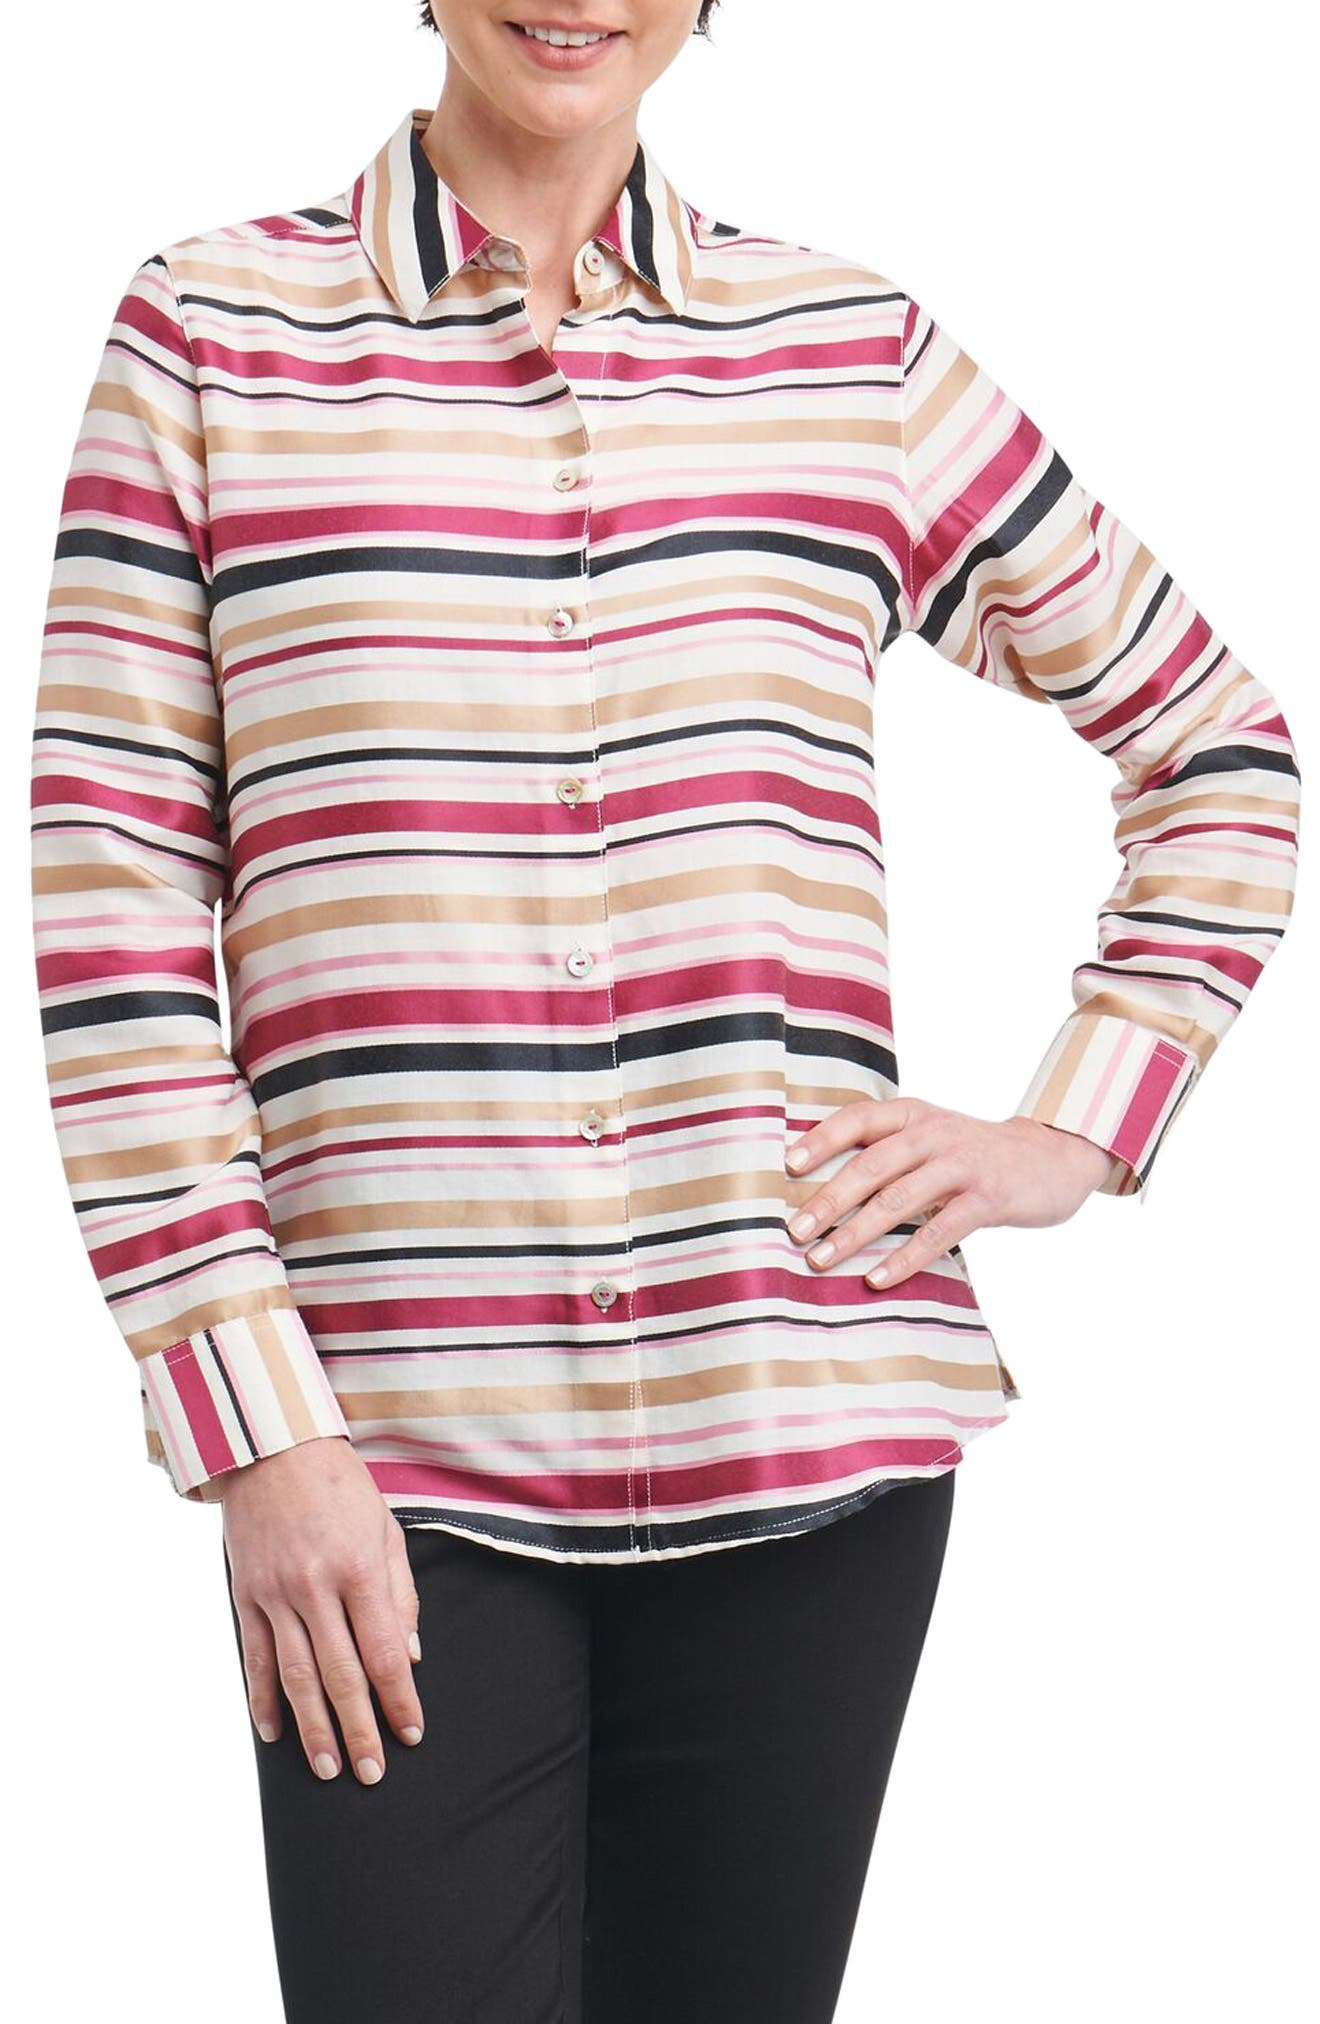 Addison Stripe Print Sateen Shirt,                         Main,                         color, 208